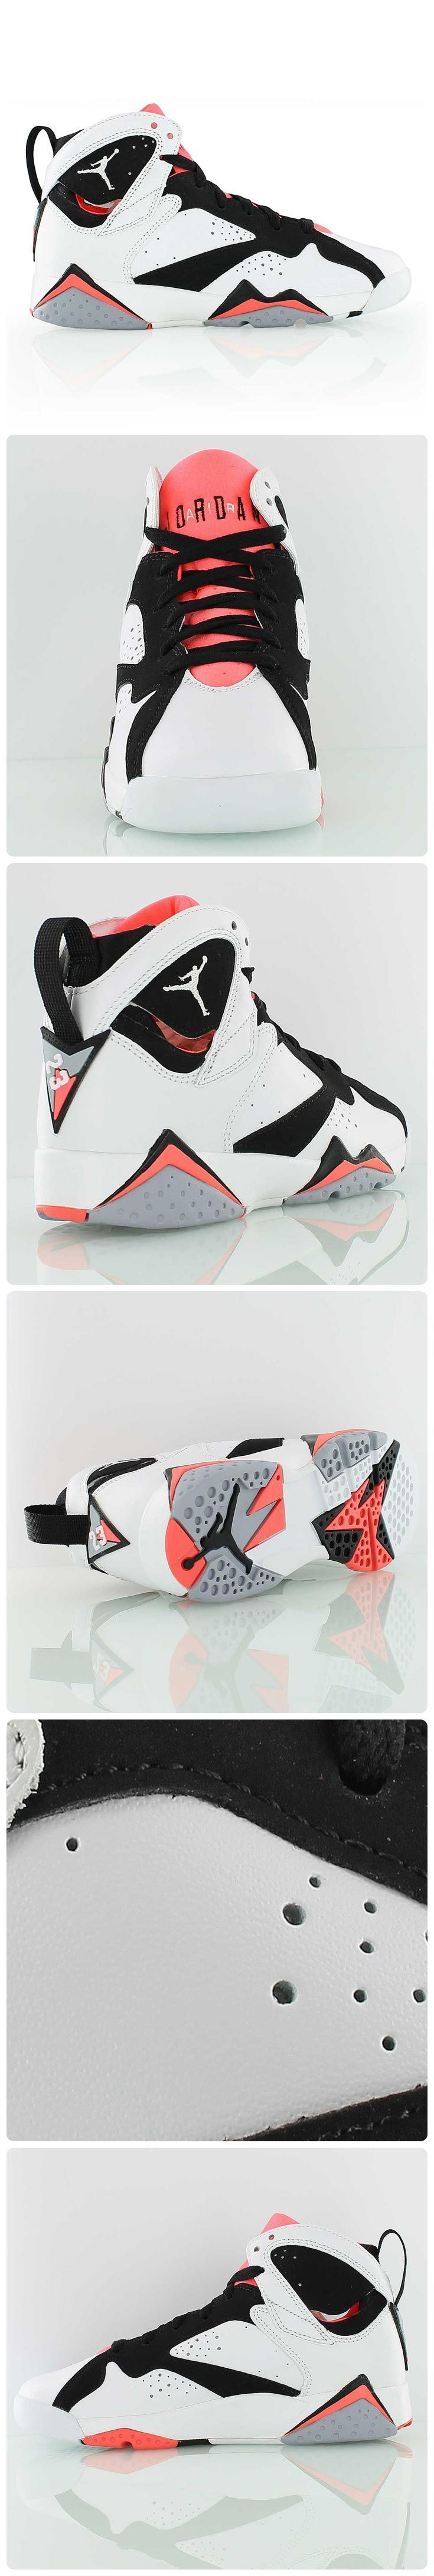 8daab4f8a5de ... amazon air jordan 7 retro gg hot lava exclusively for all the jordan  girls out there